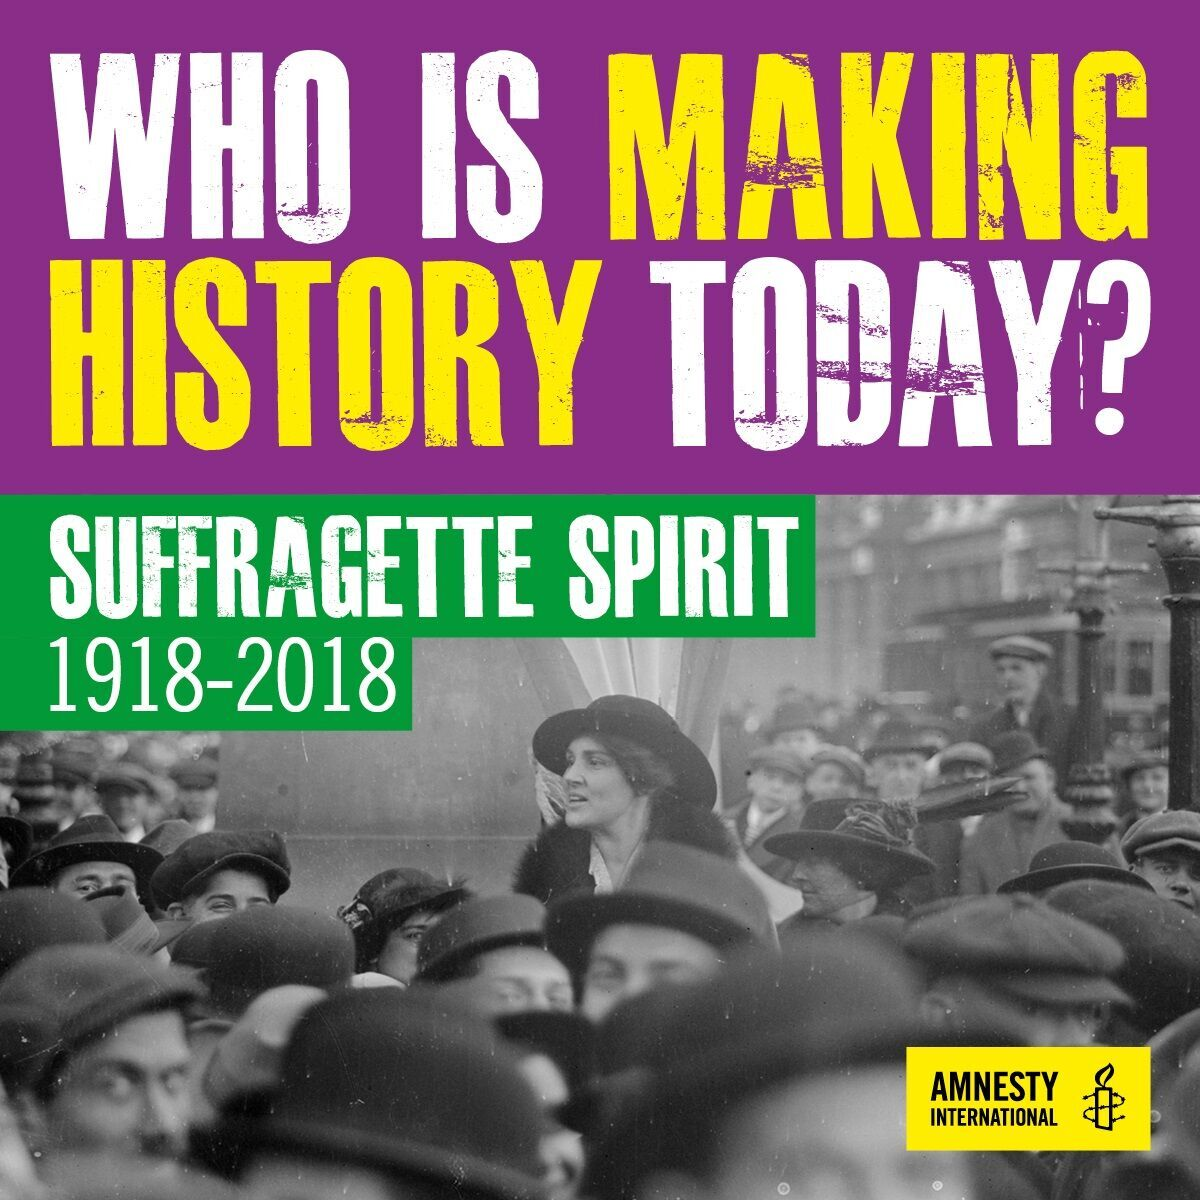 Nominate inspiring women in Cornwall who embody the suffragette spirit